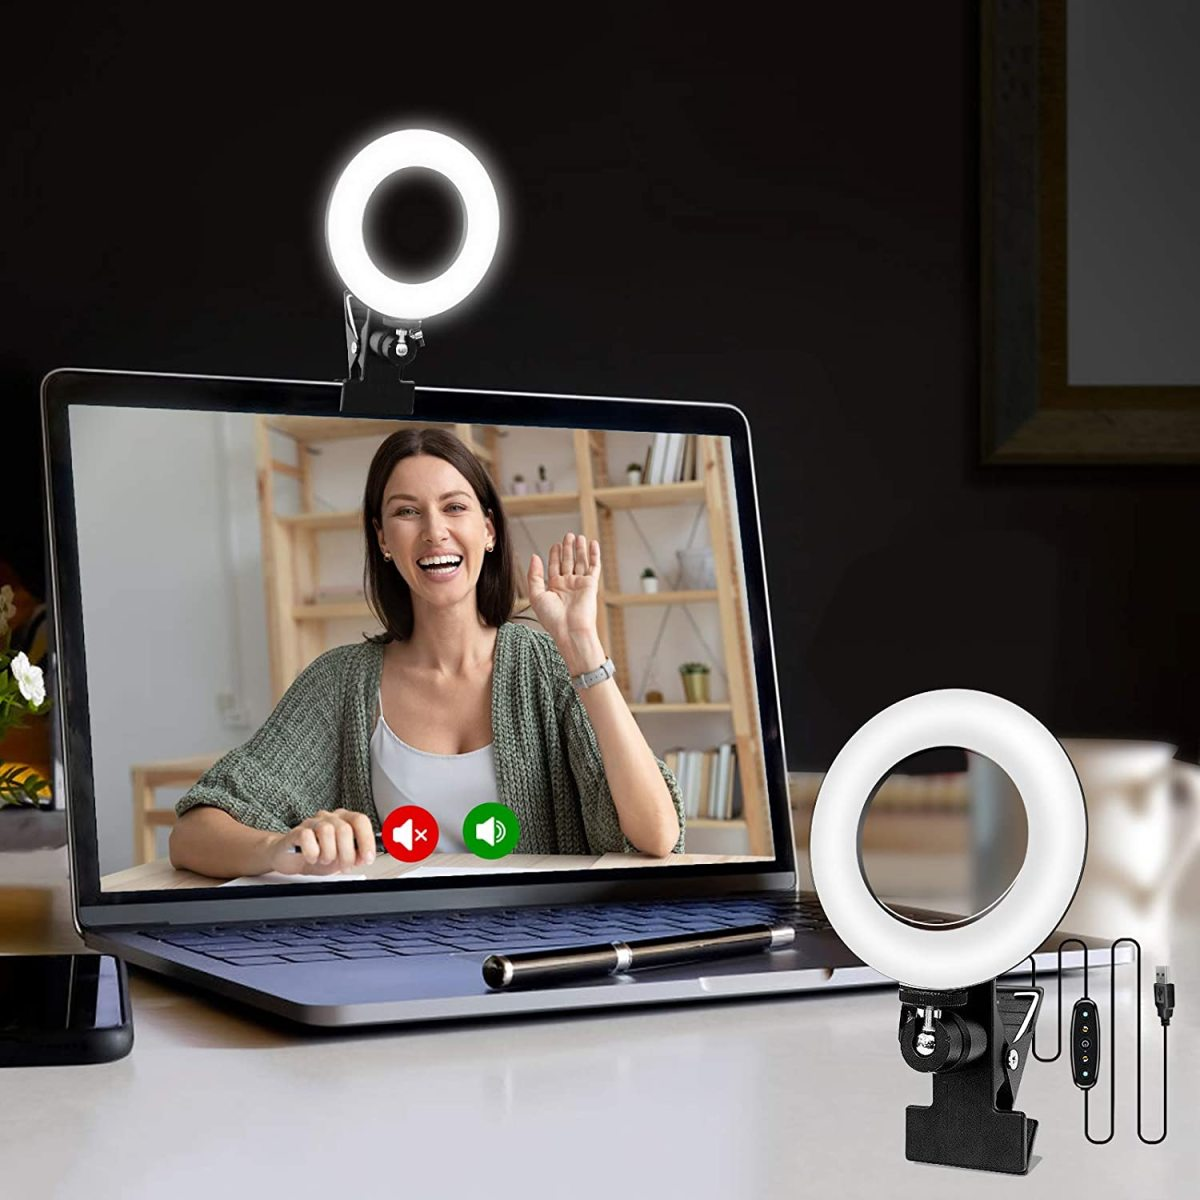 Cyezcor Video Conference Lighting Kit, Light for Monitor Clip On,for Remote Working, Distance Learning